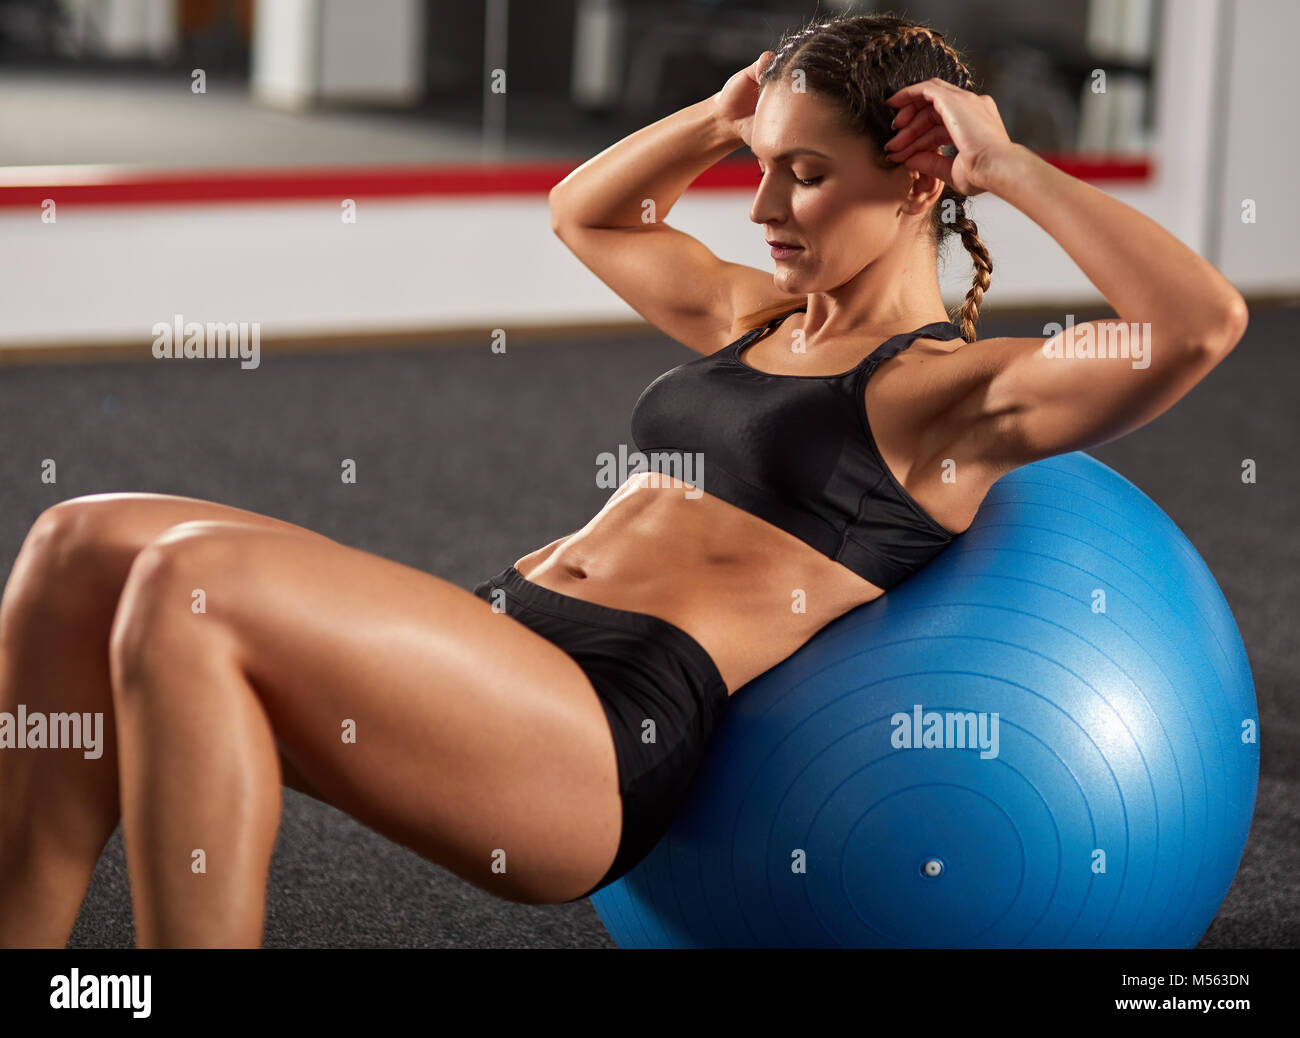 Fitness Girl Doing Abs Crunches In The Gym Stock Photo Alamy